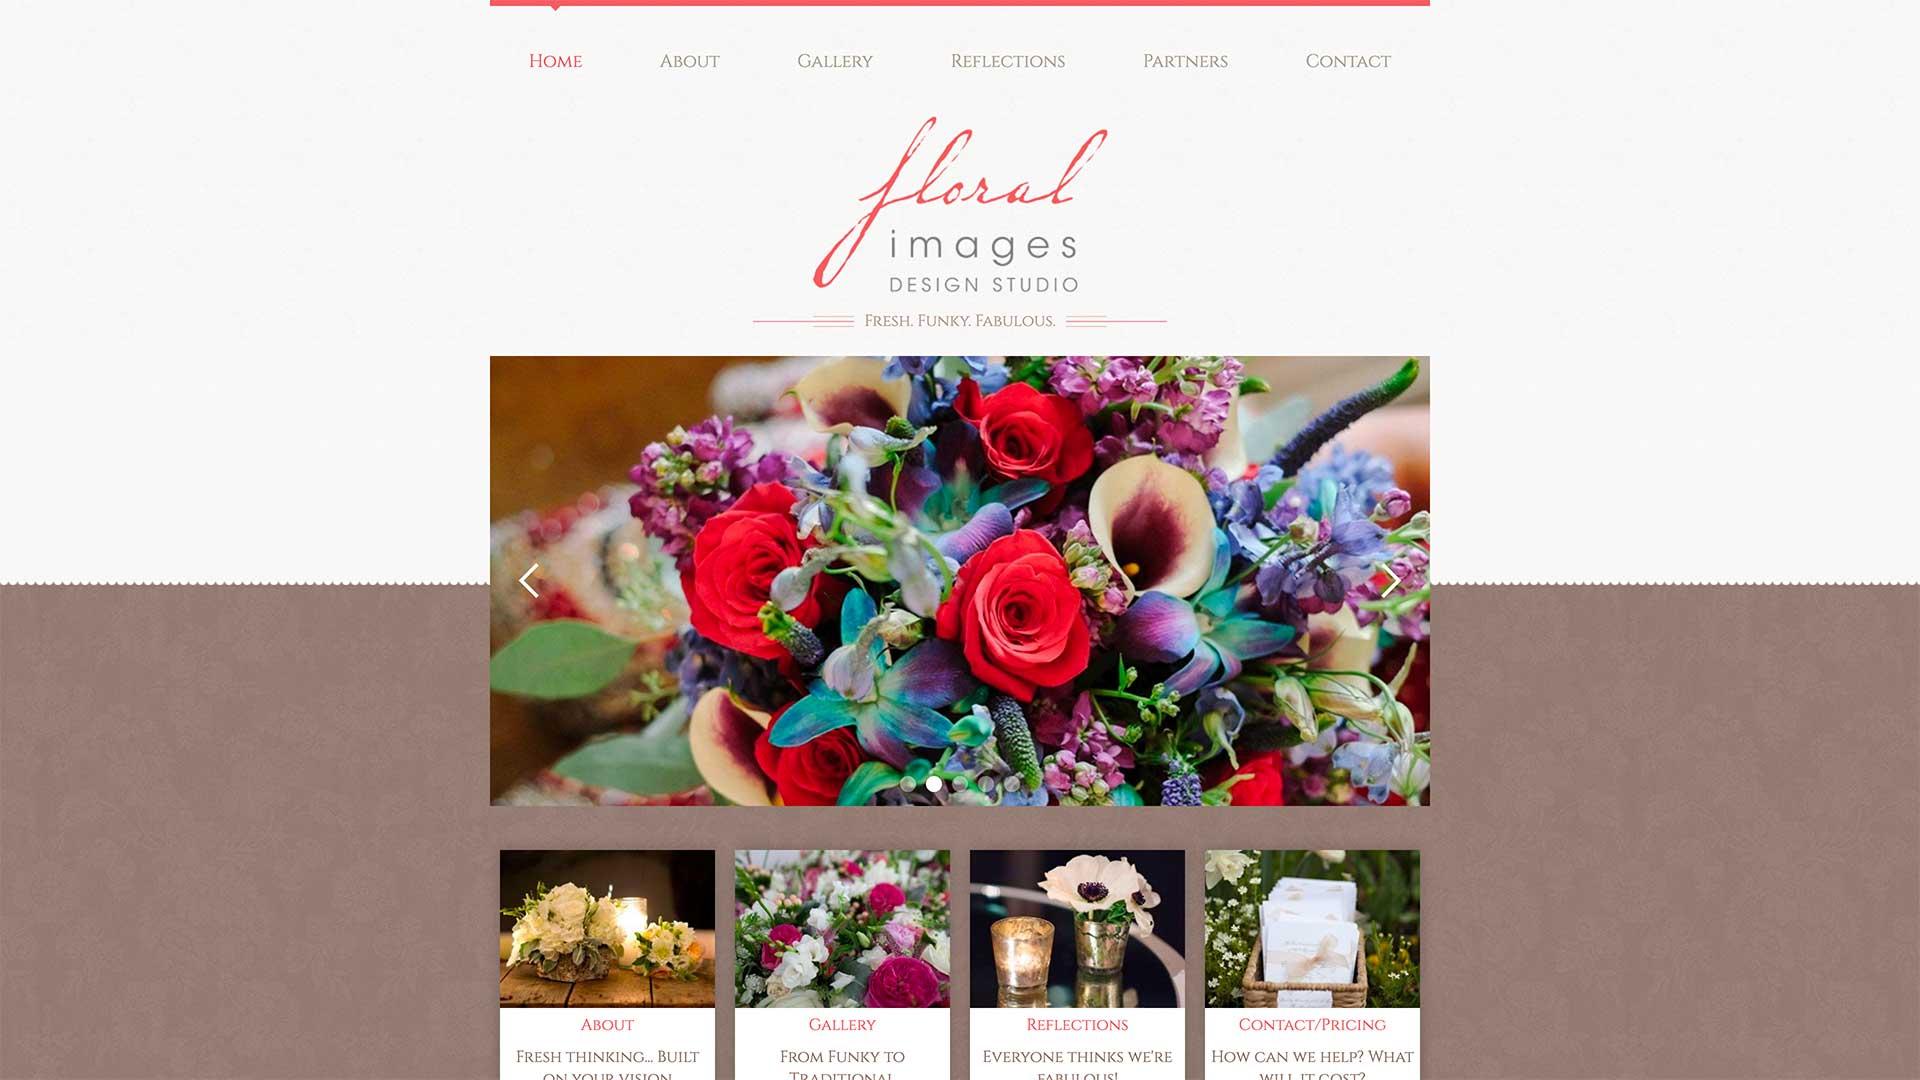 Floral Images Design Studio